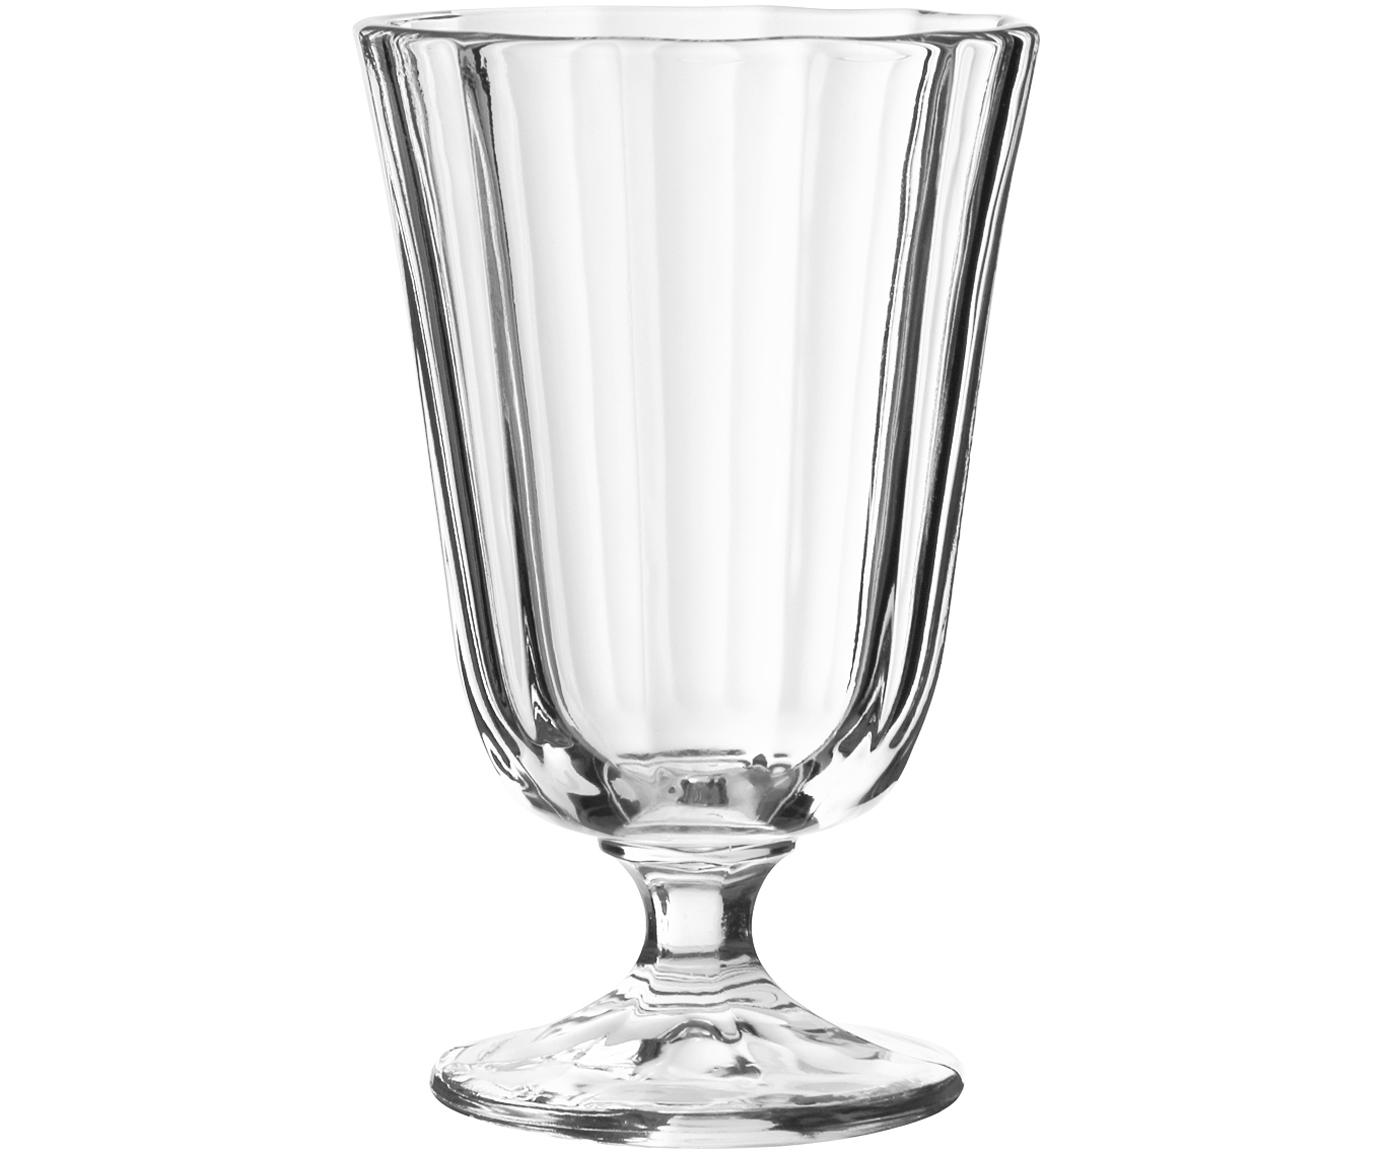 Kleine Weingläser Ana im Landhausstil, 12er-Set, Glas, Transparent, 195 ml